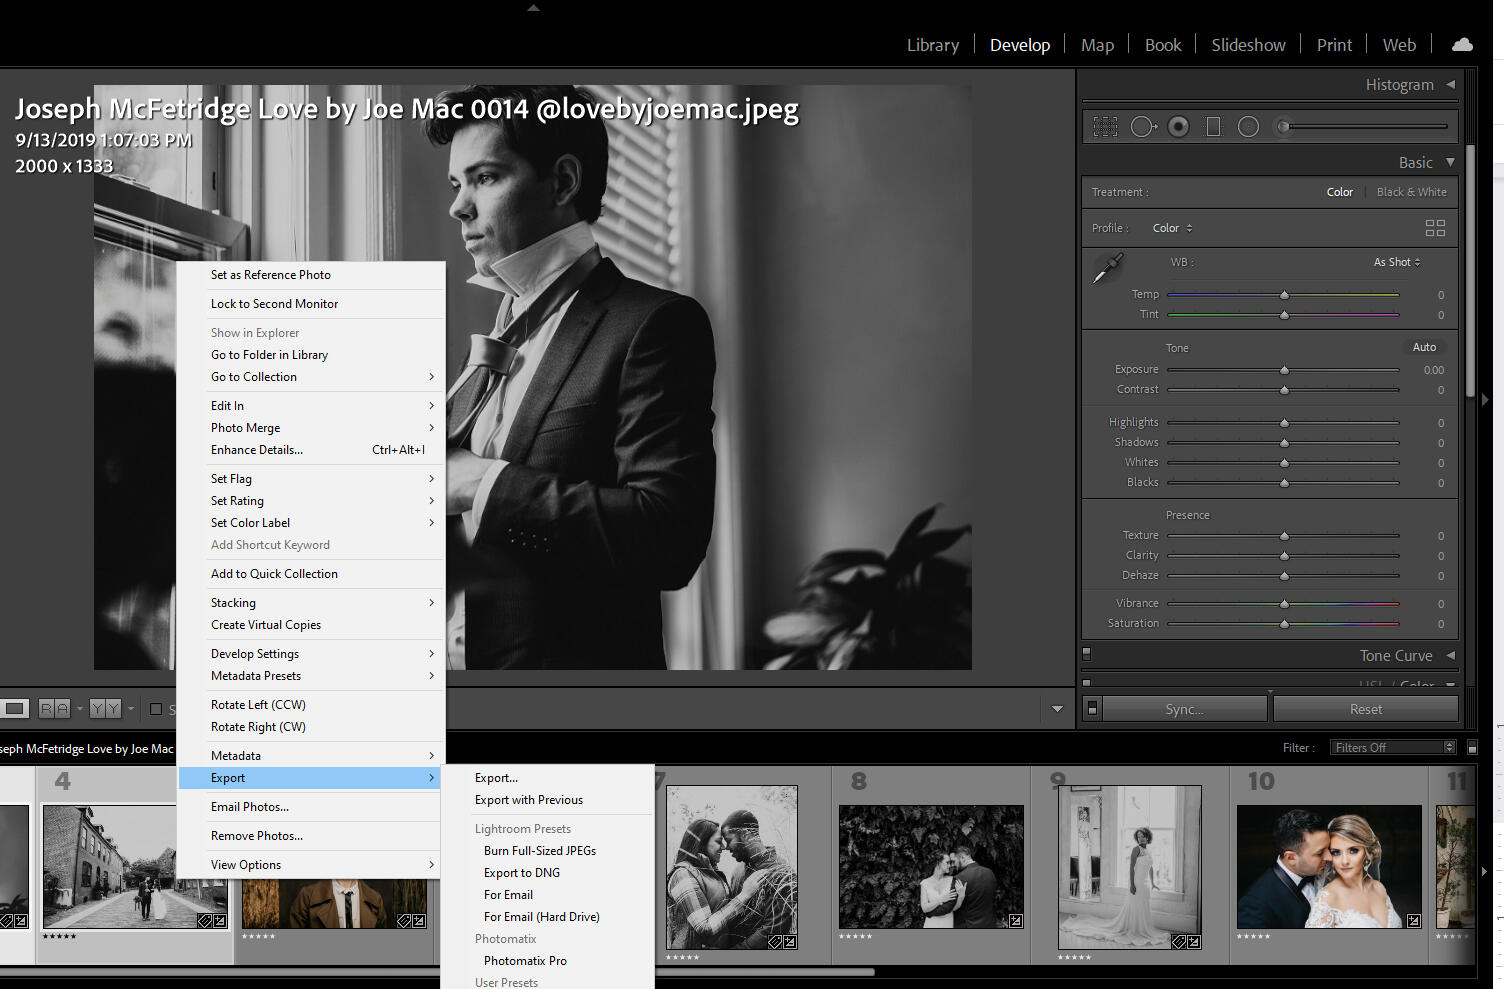 How to export from Lightroom